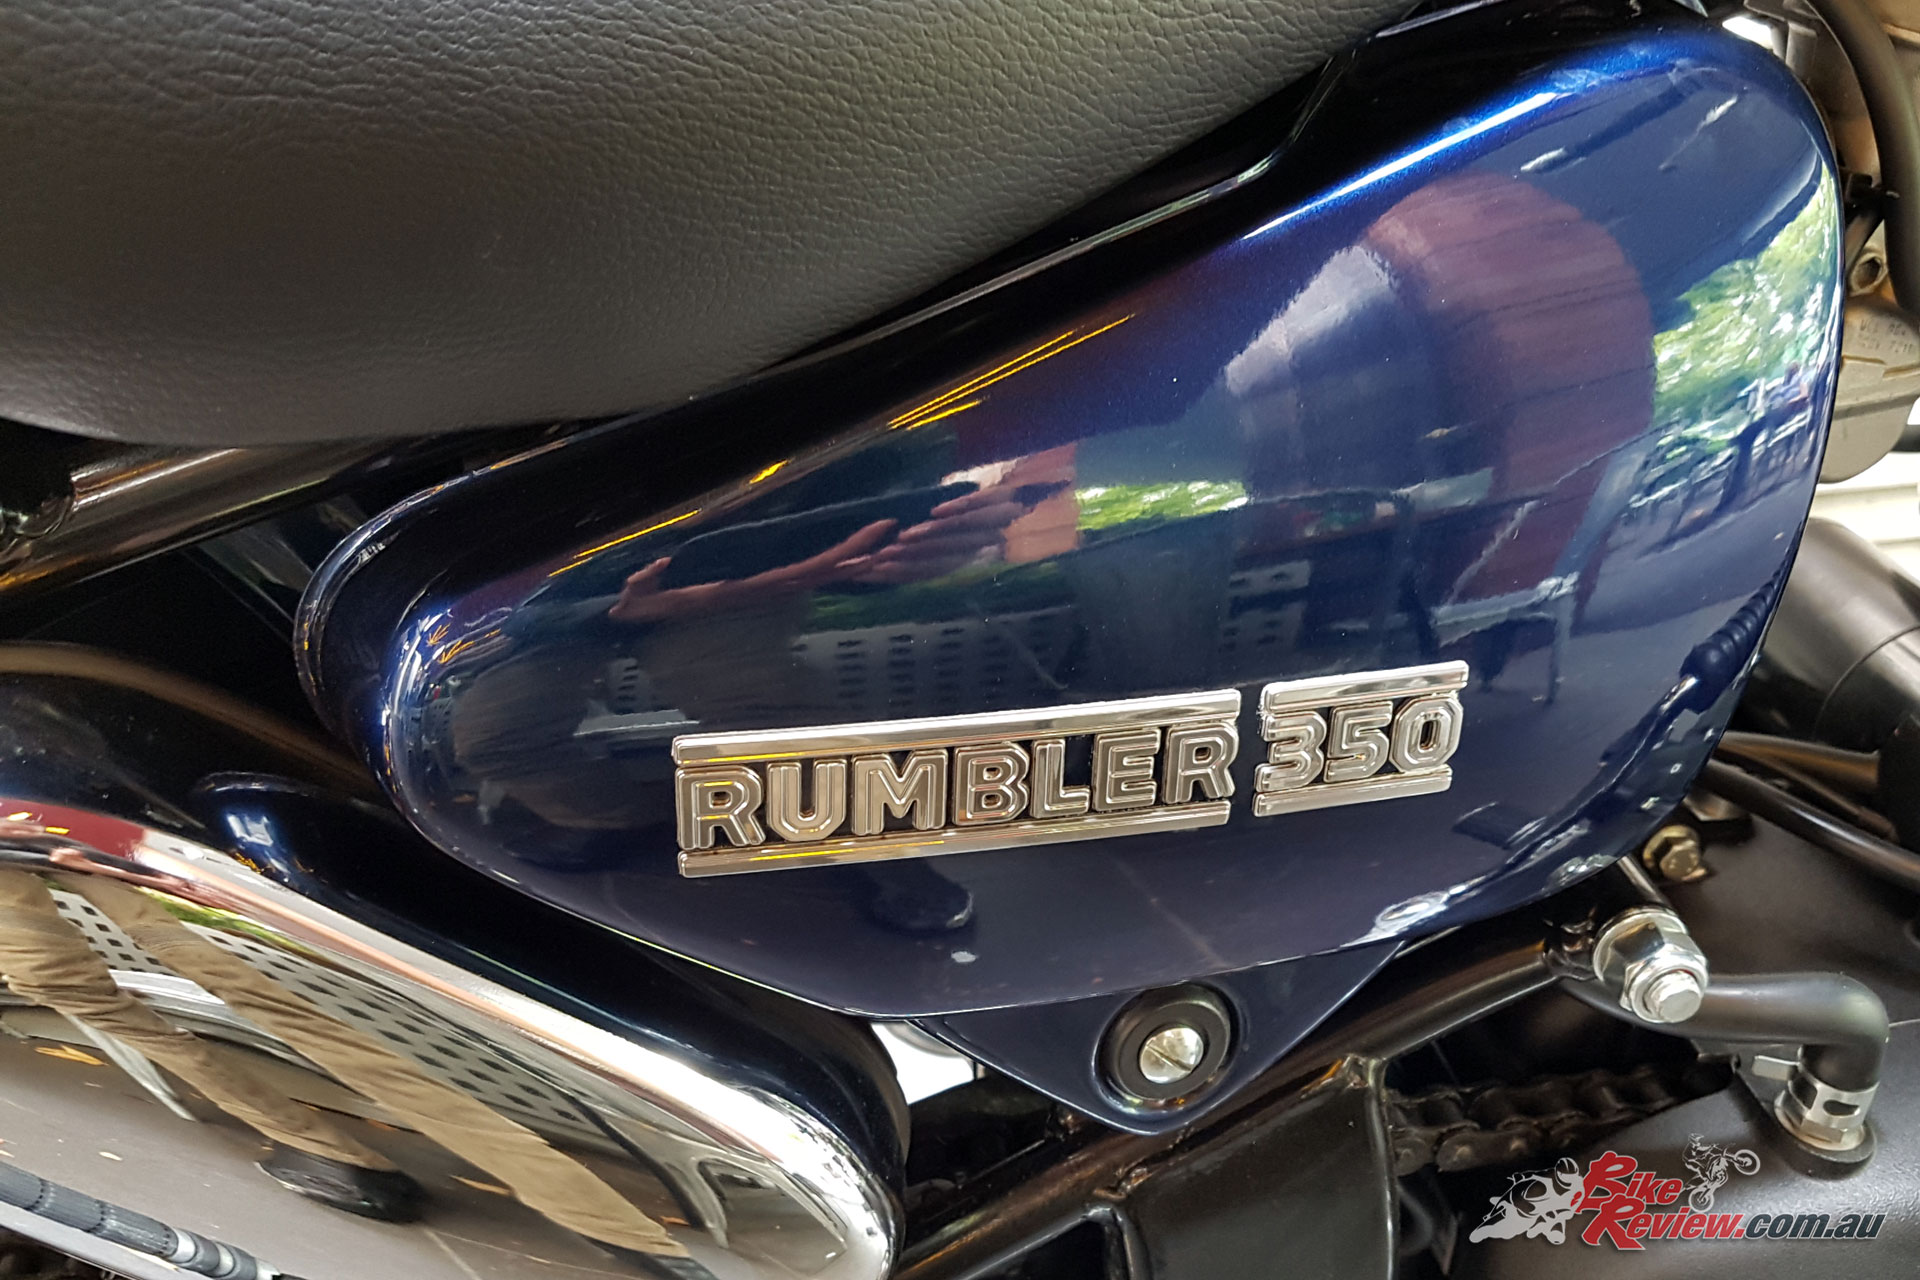 Review: 2018 Royal Enfield Rumbler 350 (LAMS)